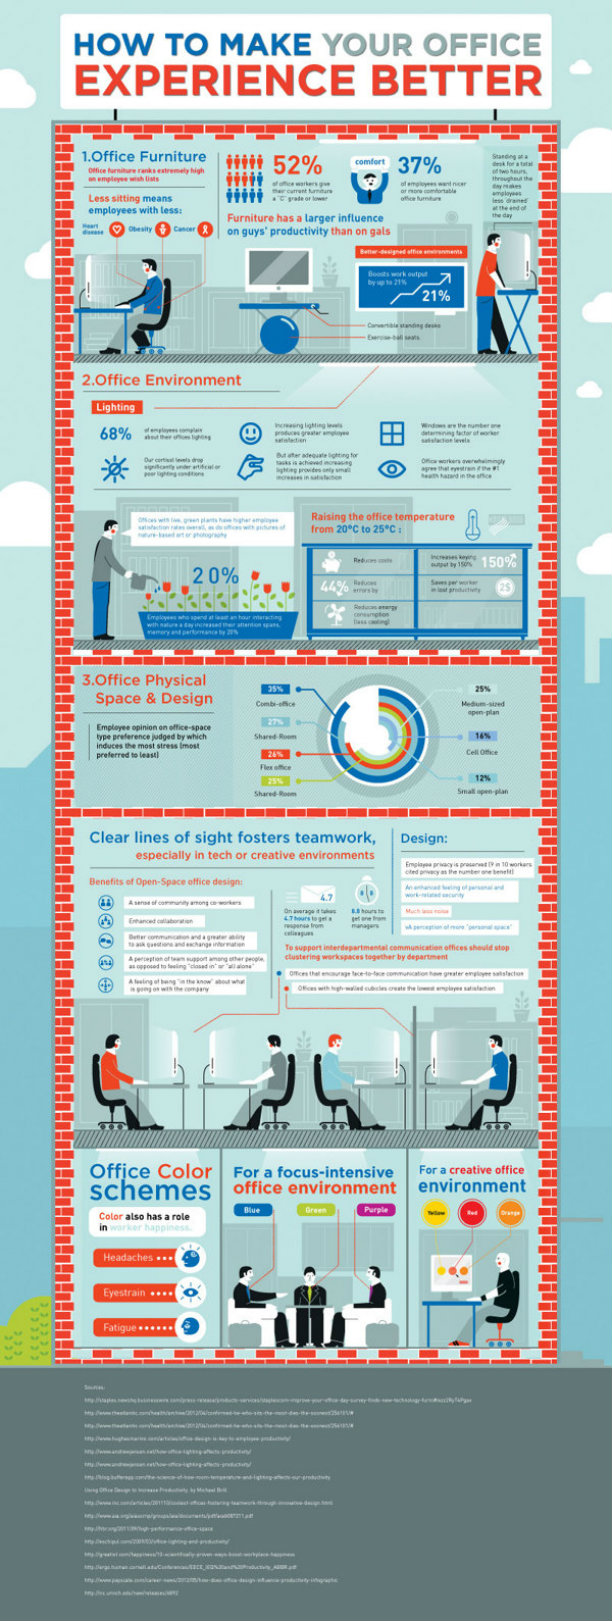 office experience infographic